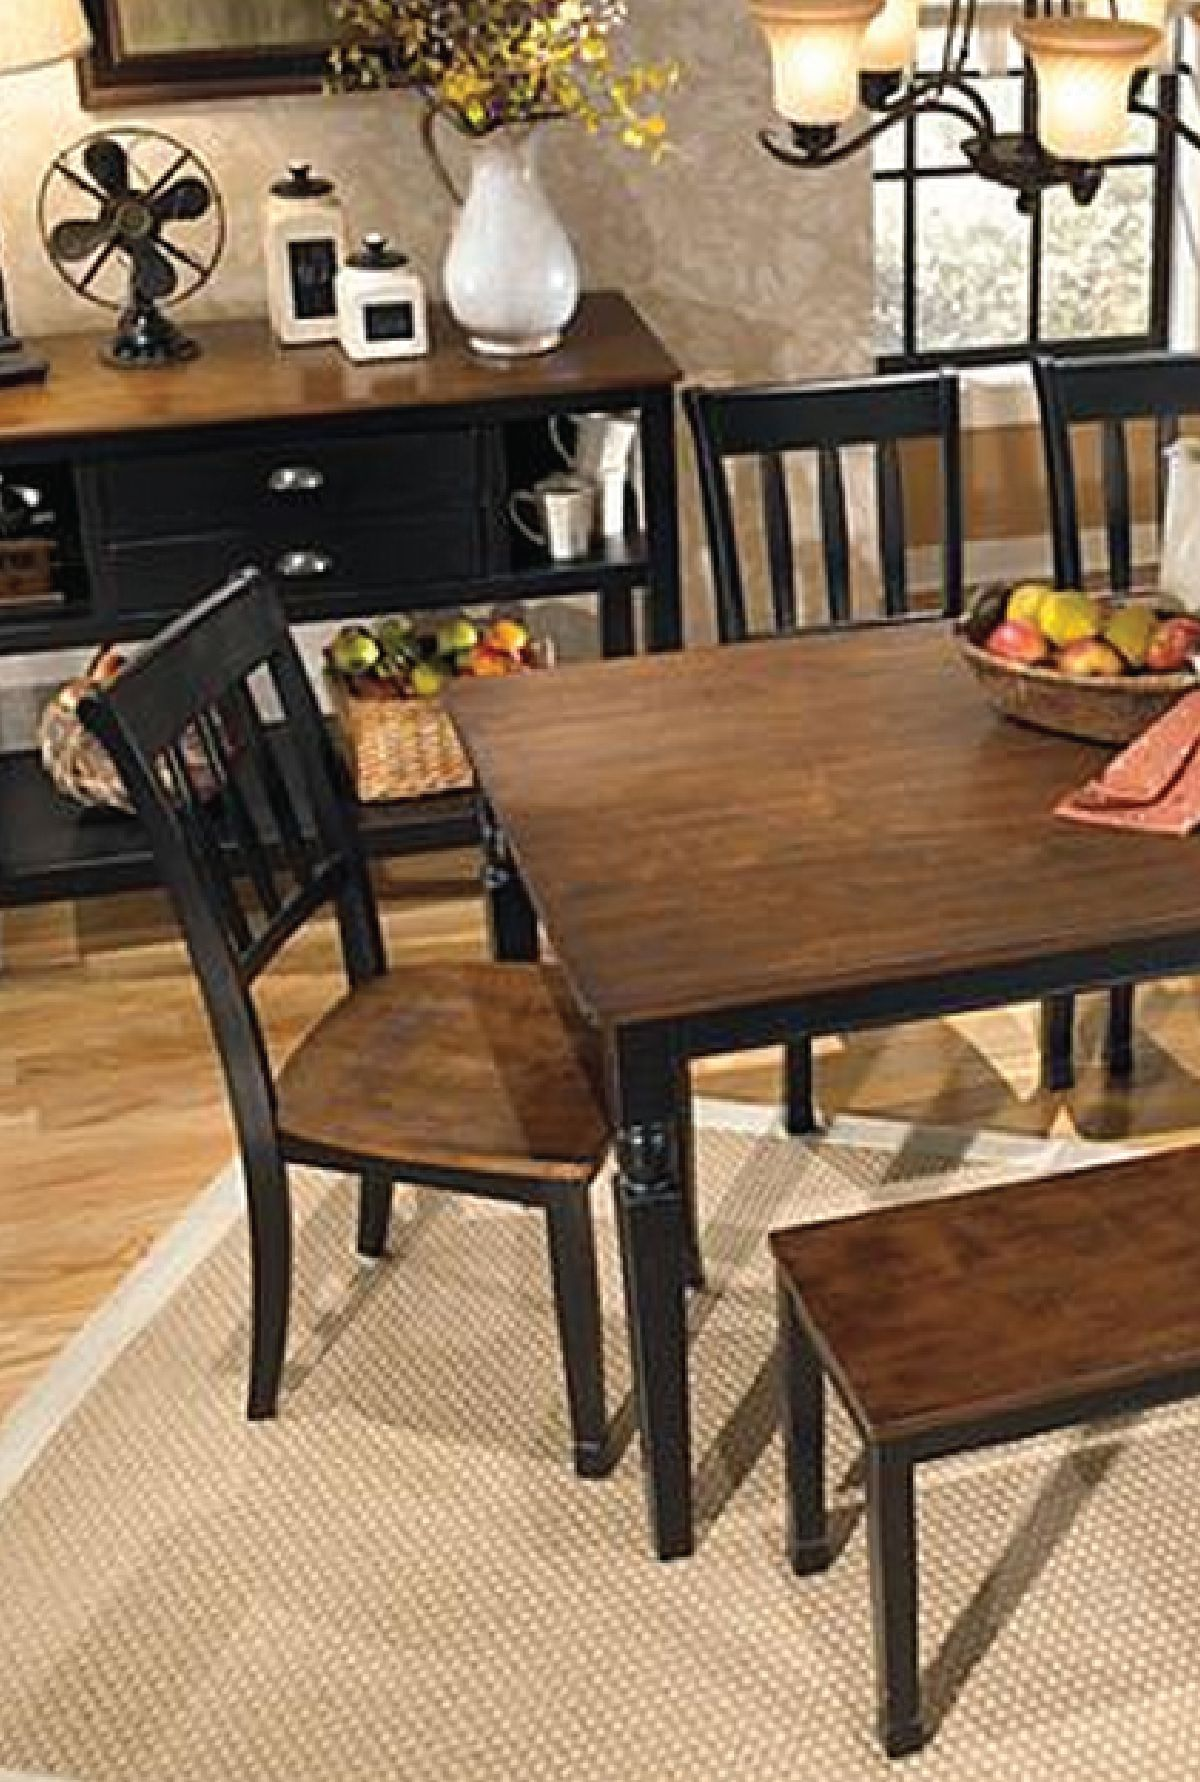 Owingsville Dining Room Table Kitchen Table Wood Dining Room Remodel Dining Room Table Decor